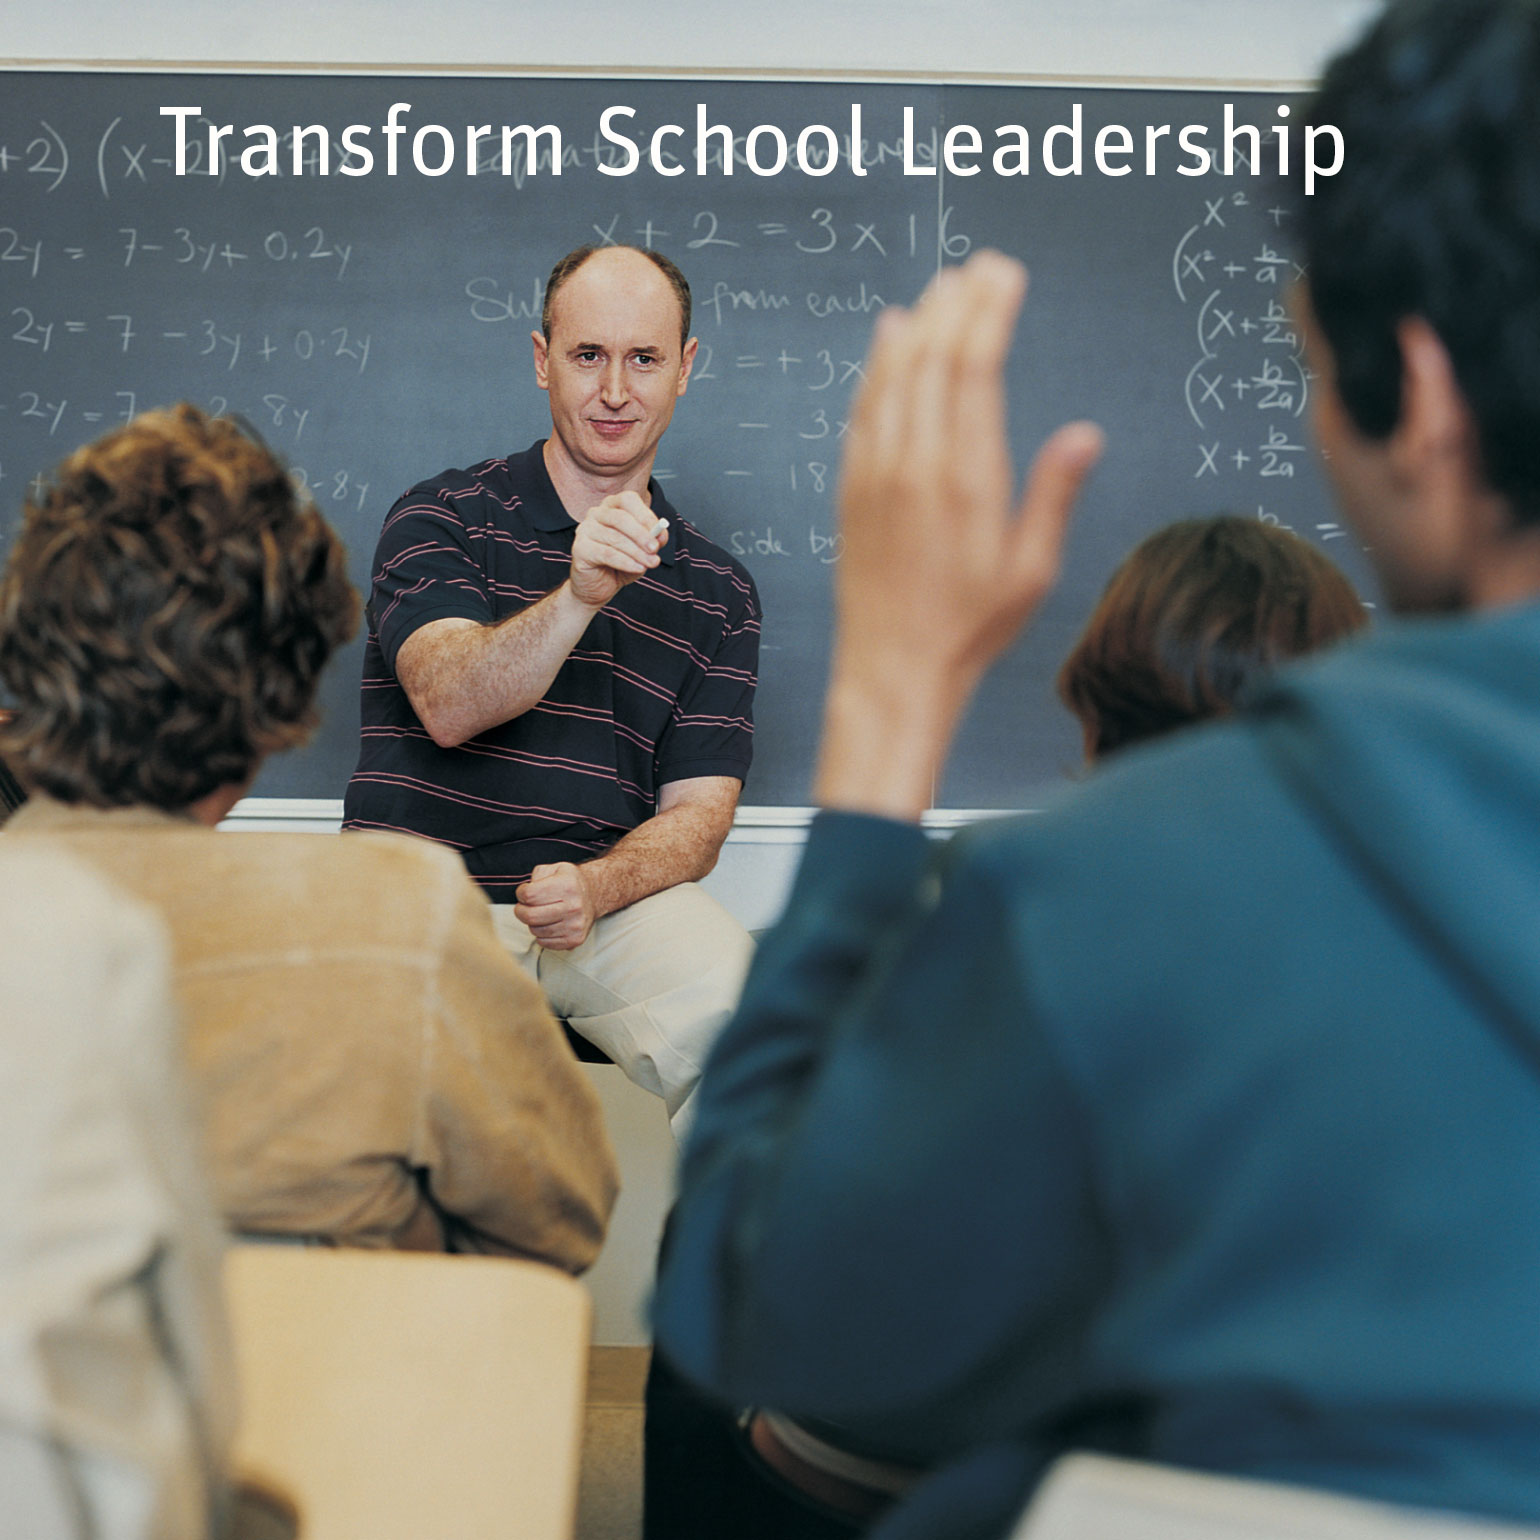 Transform-School-Leadership.jpg